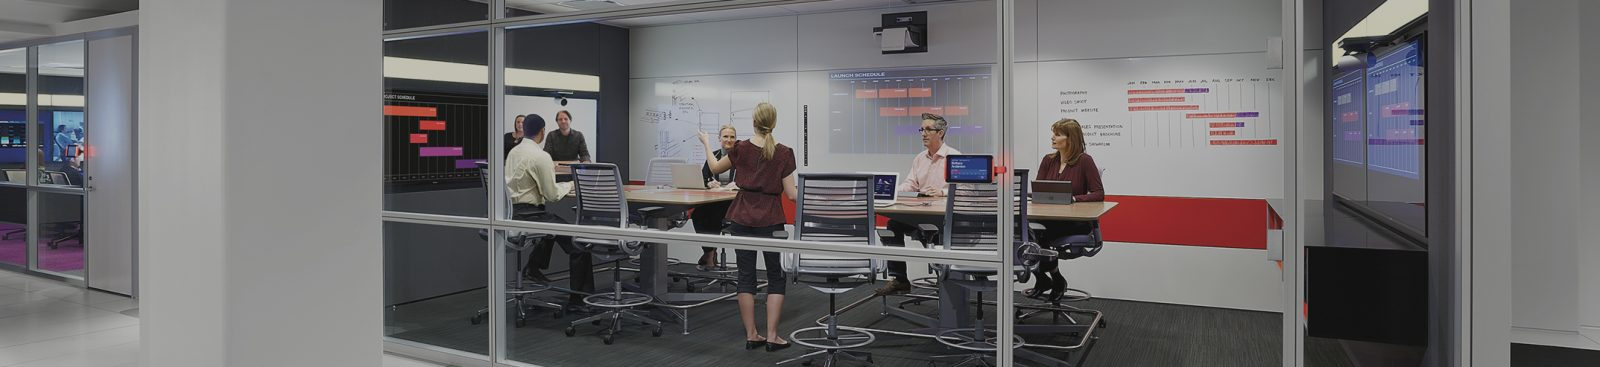 How efficient and effective is your meeting space technology? image